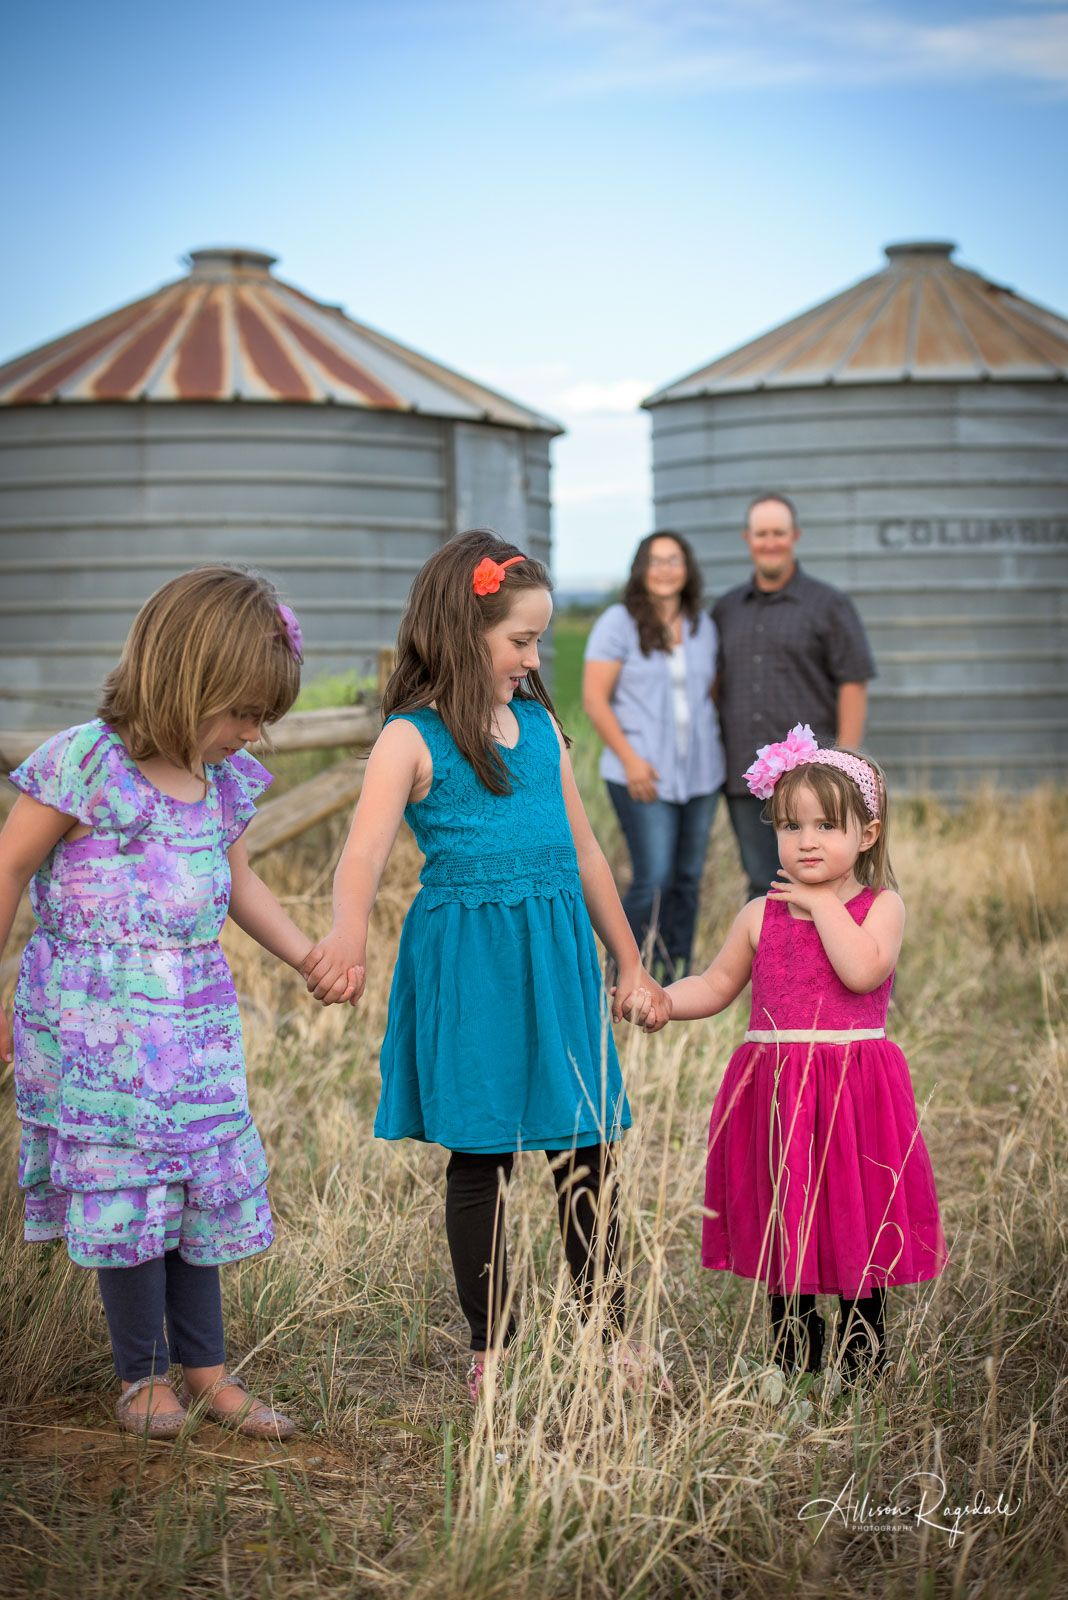 Outdoor rustic family pictures allison ragsdale photography